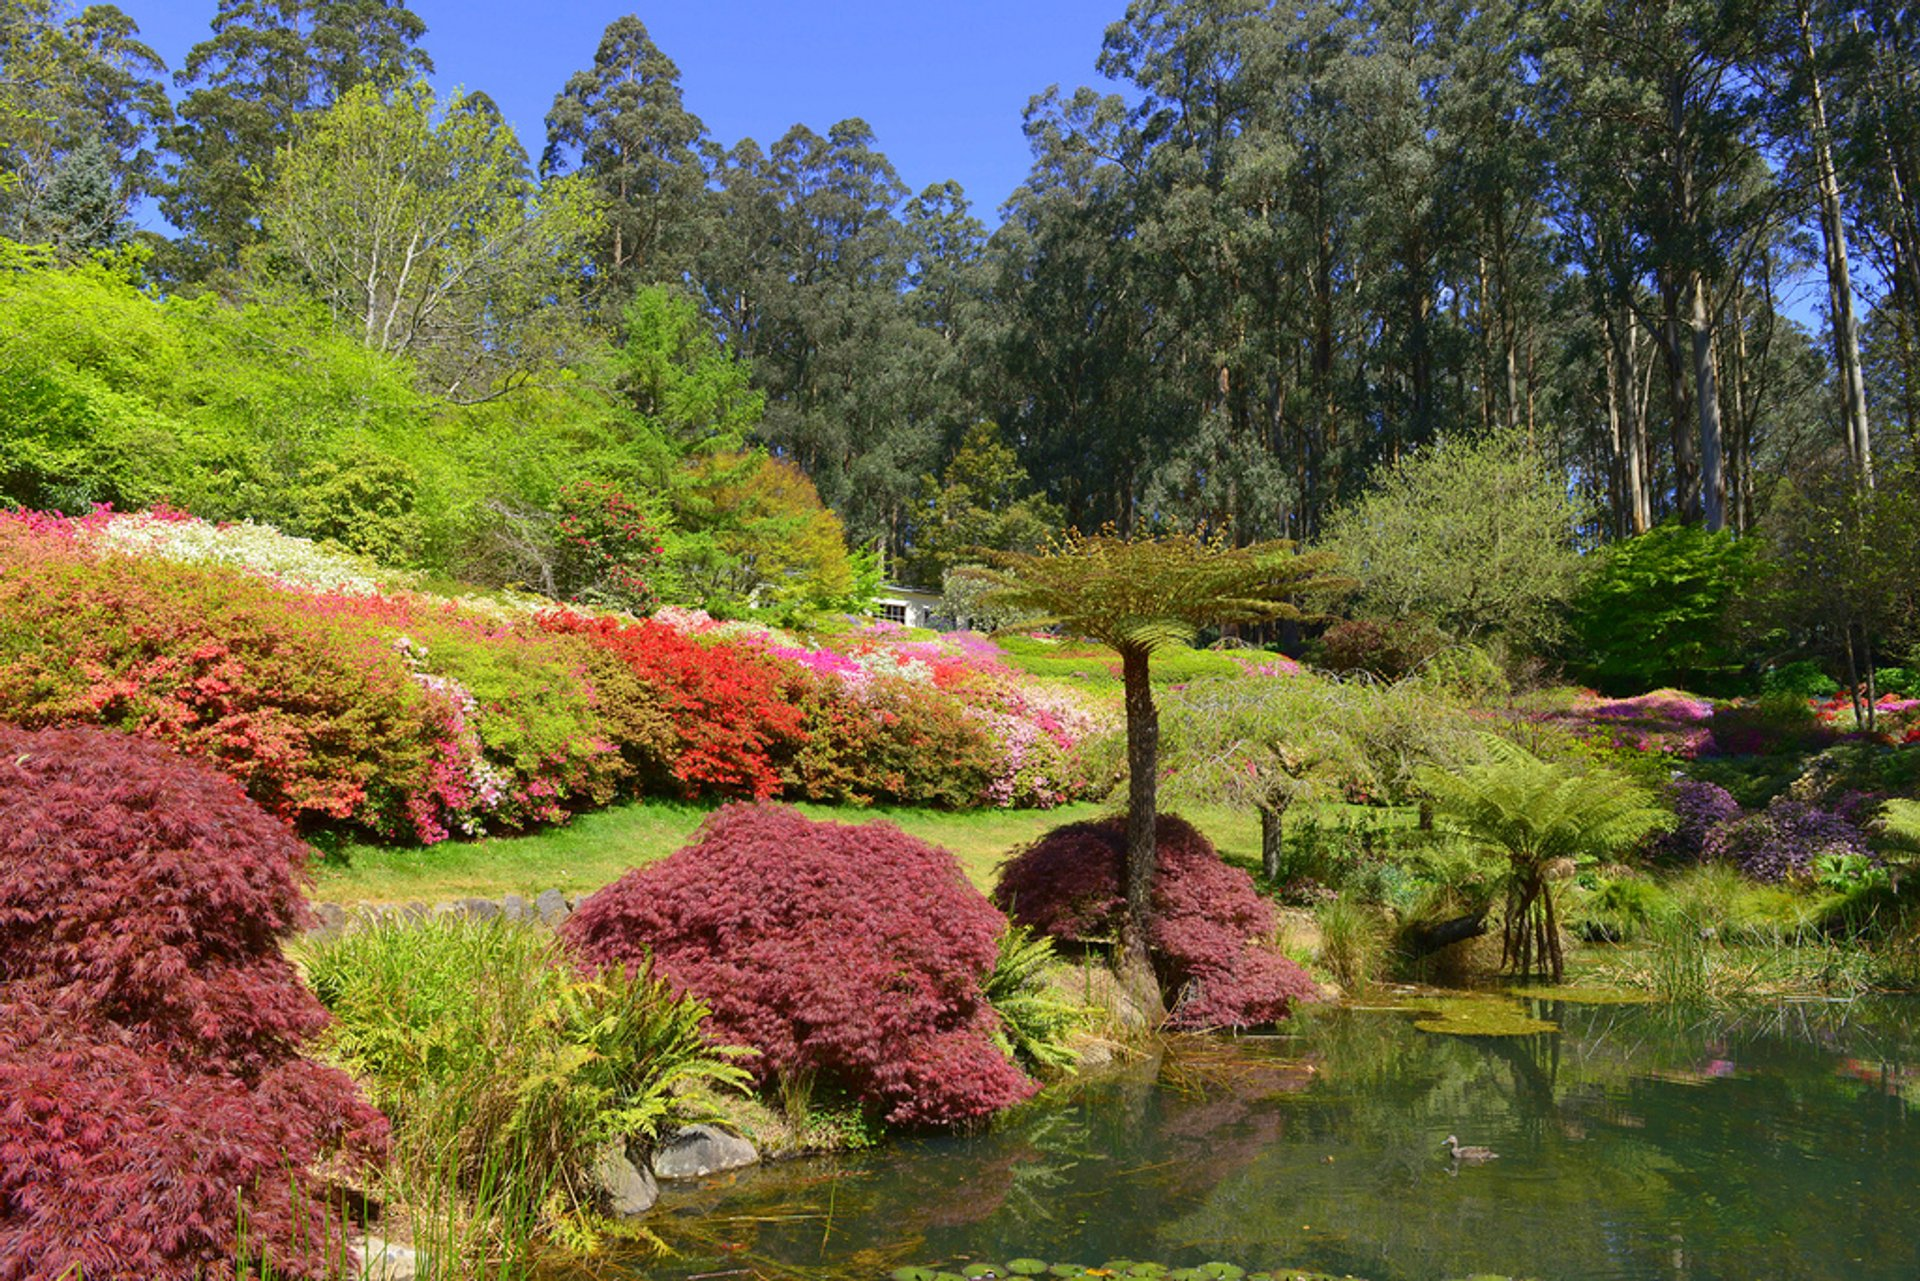 Best time to see Rhododendron Blooming in Dandenong Ranges Botanic Garden in Victoria 2020